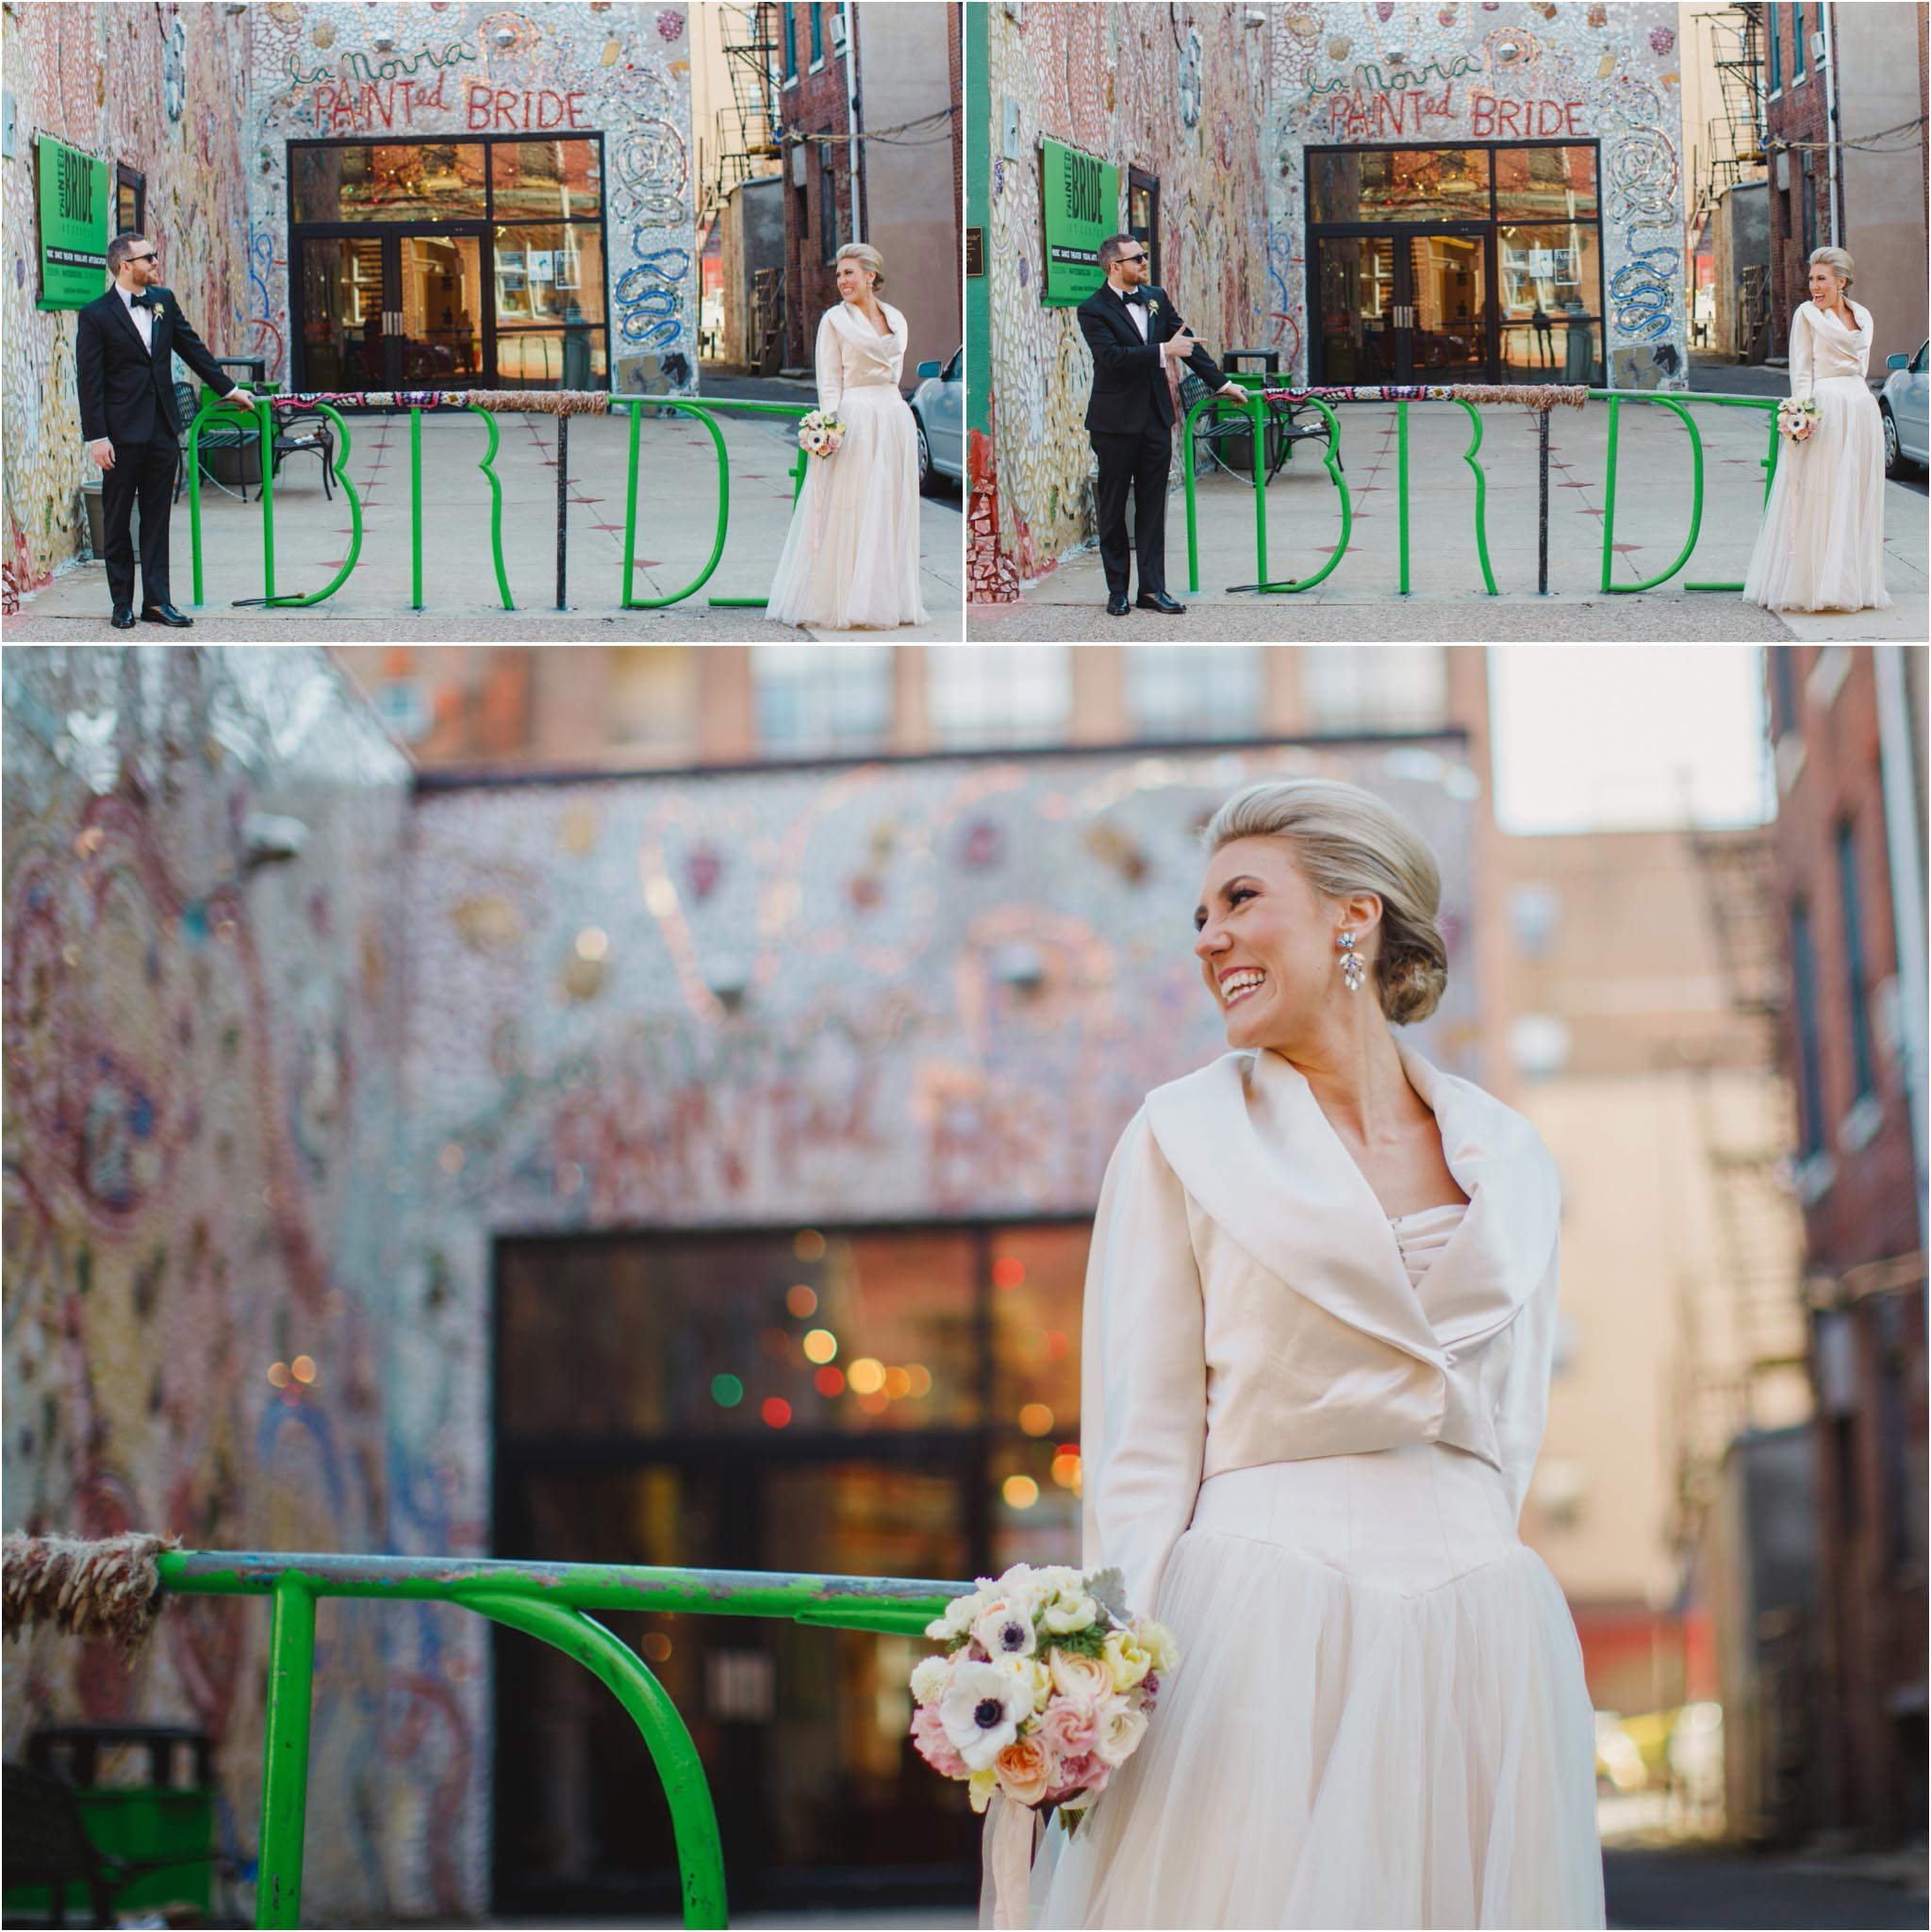 Painted Bride Art Center, wedding